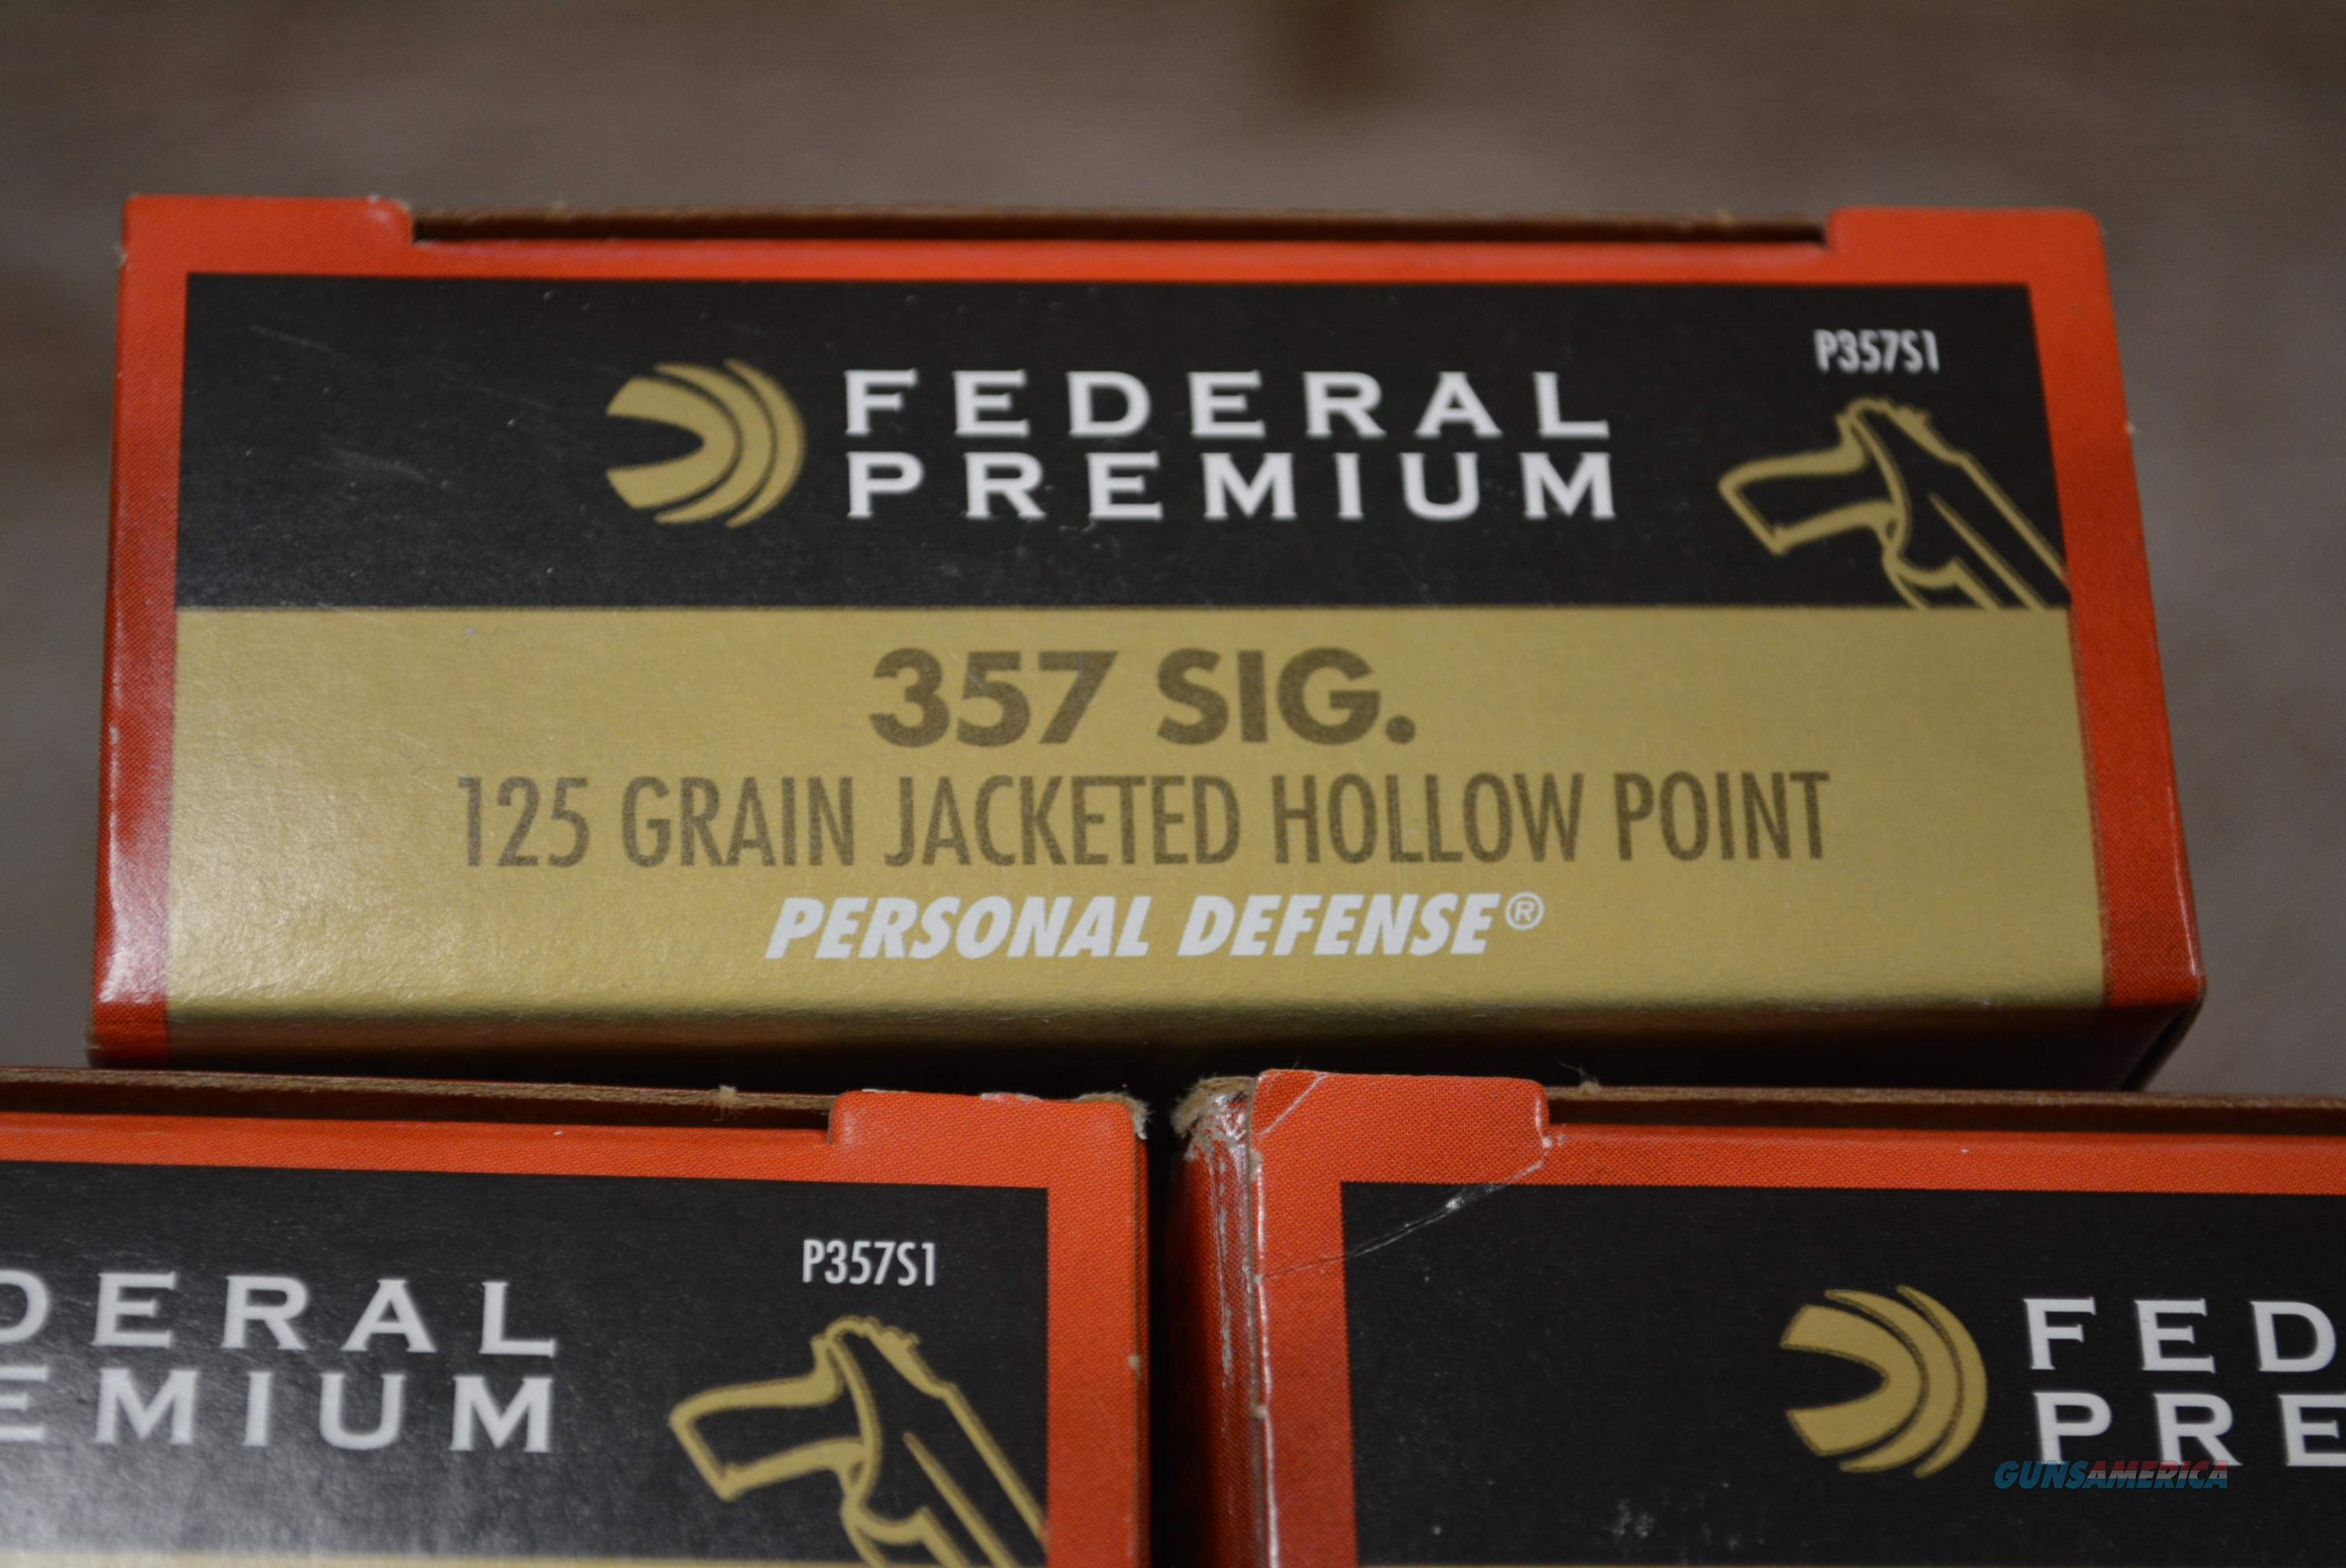 Federal Premium 357 Sig 125 Gr. Personal Defense 250 rds P357S1  Non-Guns > Ammunition